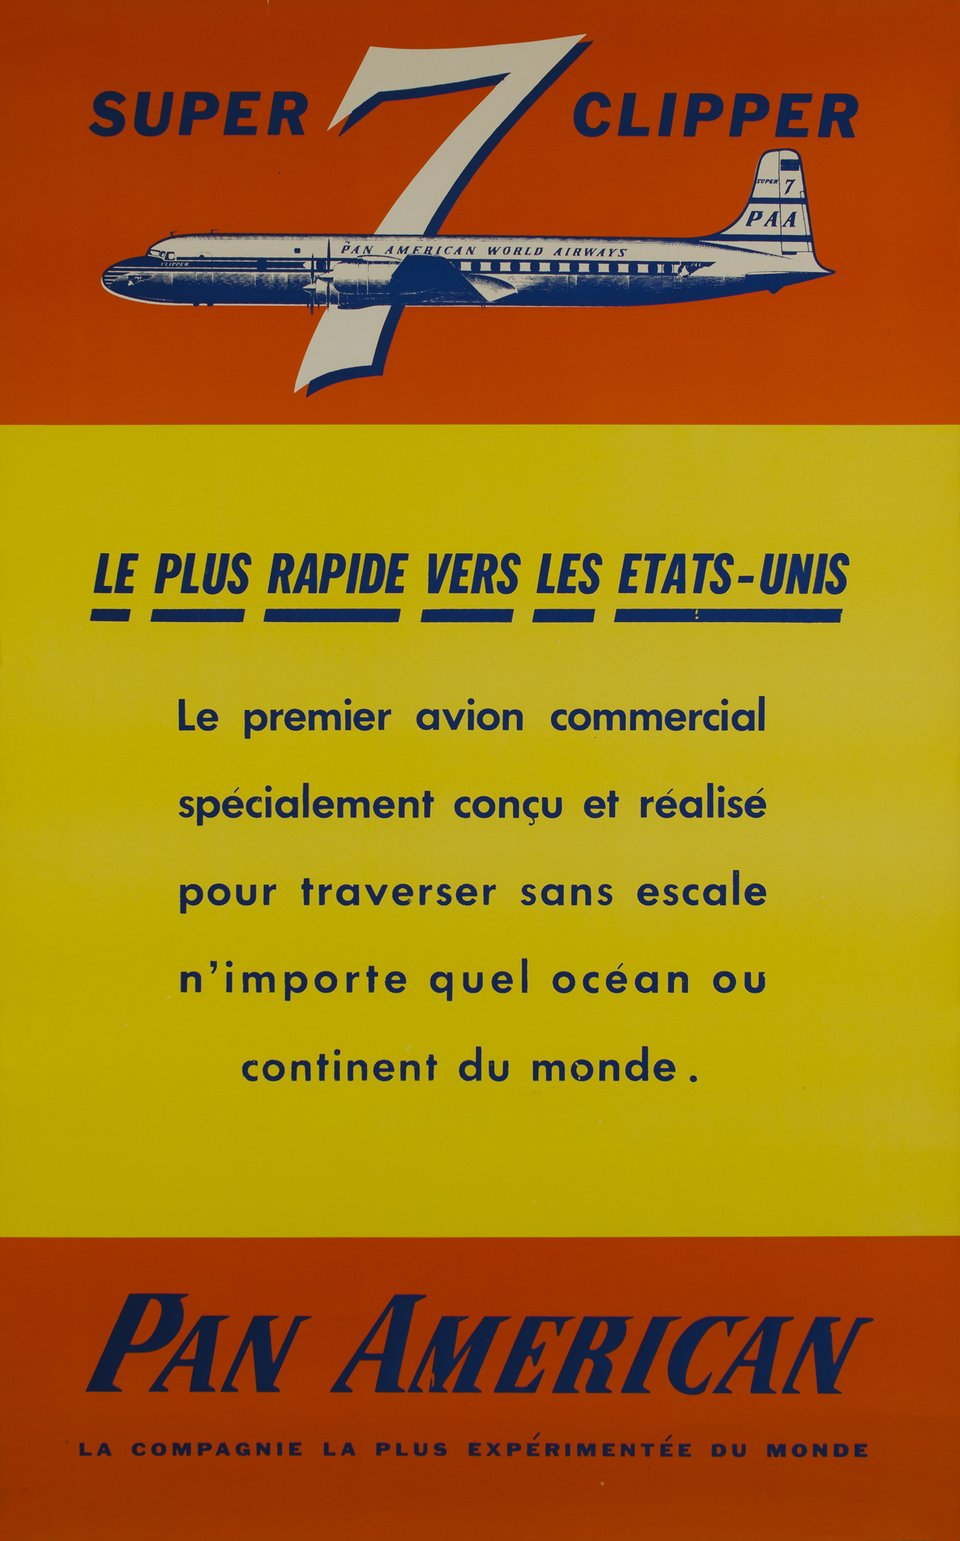 Pan American, Super Clipper 7, DC-7C – Affiche ancienne –  ANONYME – 1956